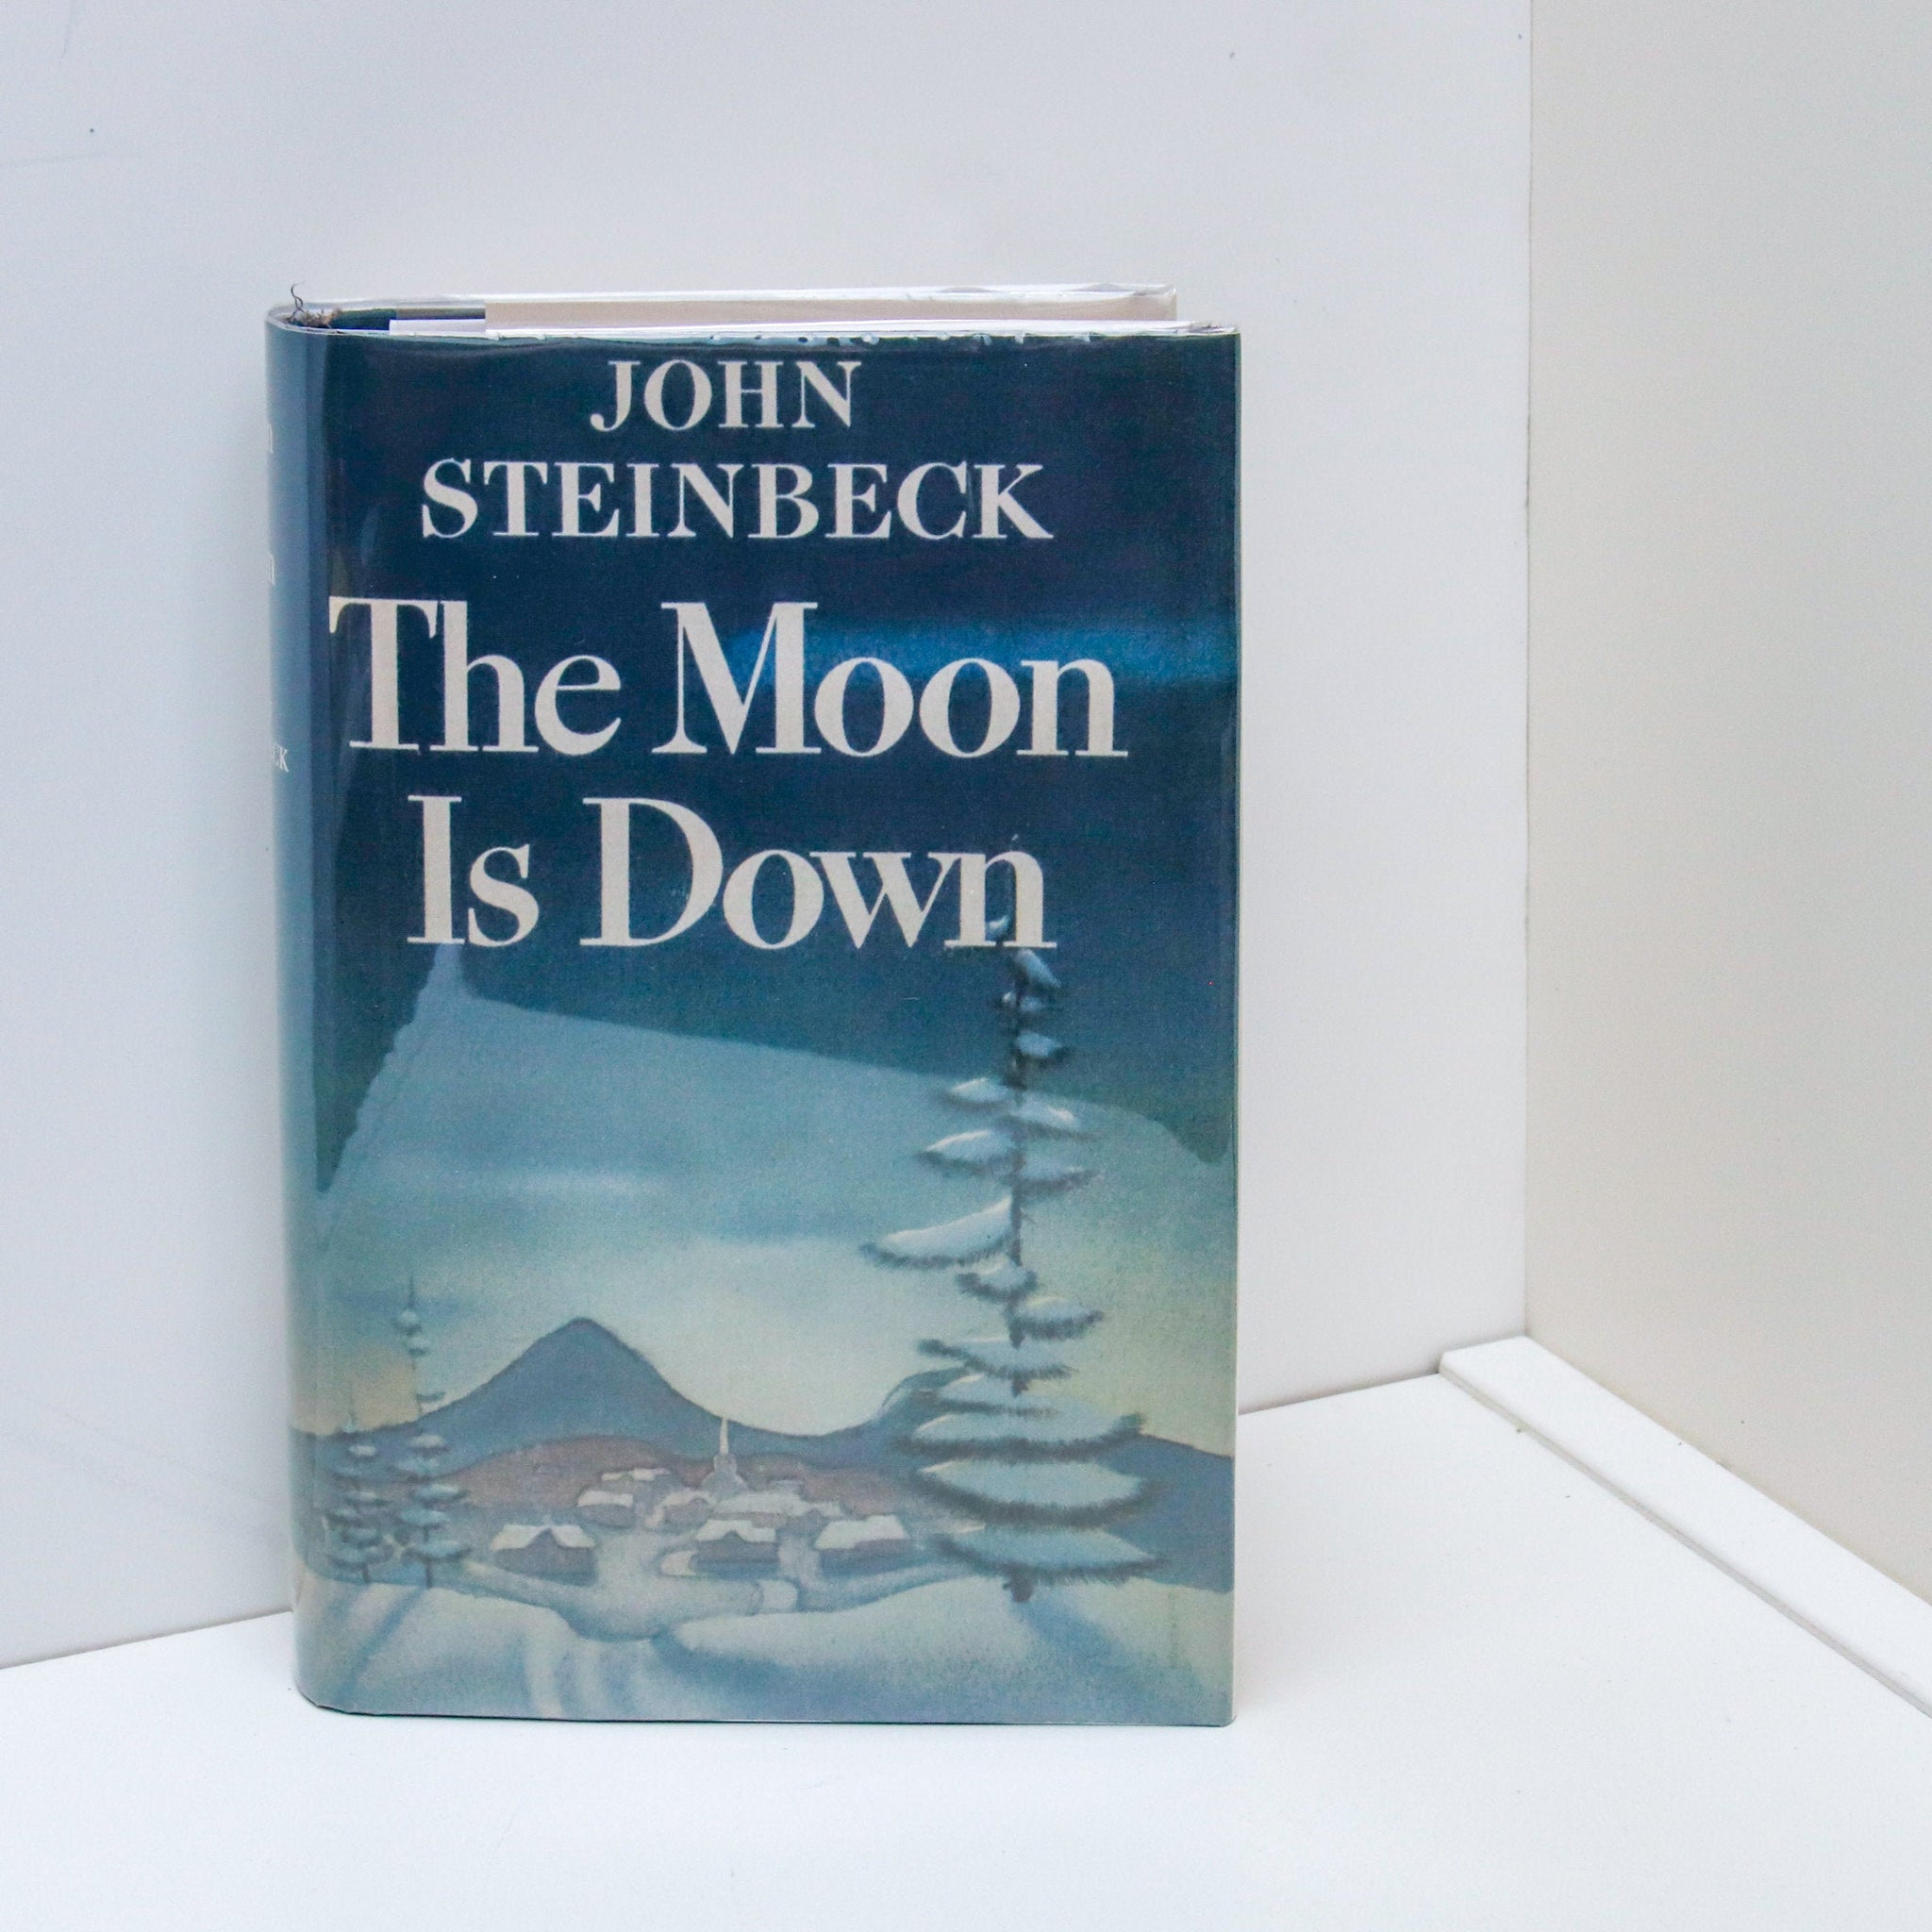 "John Steinbeck ""The Moon is Down"" First edition, second state [1942] Facsimile first edition dust wrapper"